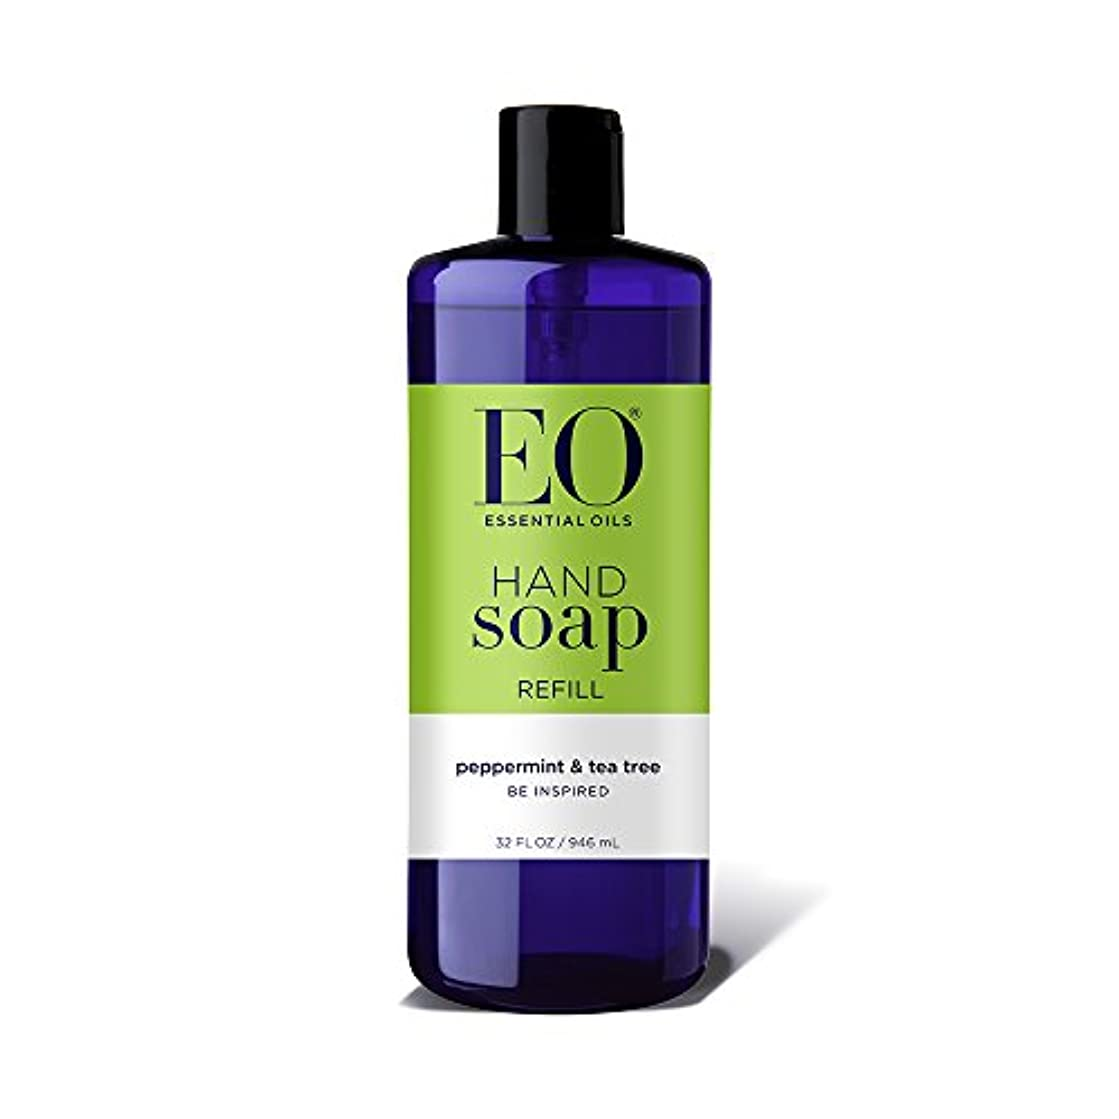 懐疑的メイド電話をかける海外直送品EO Products Hand Soap Peppermint Refill, Refill Peppermint & Tea, 32 Oz